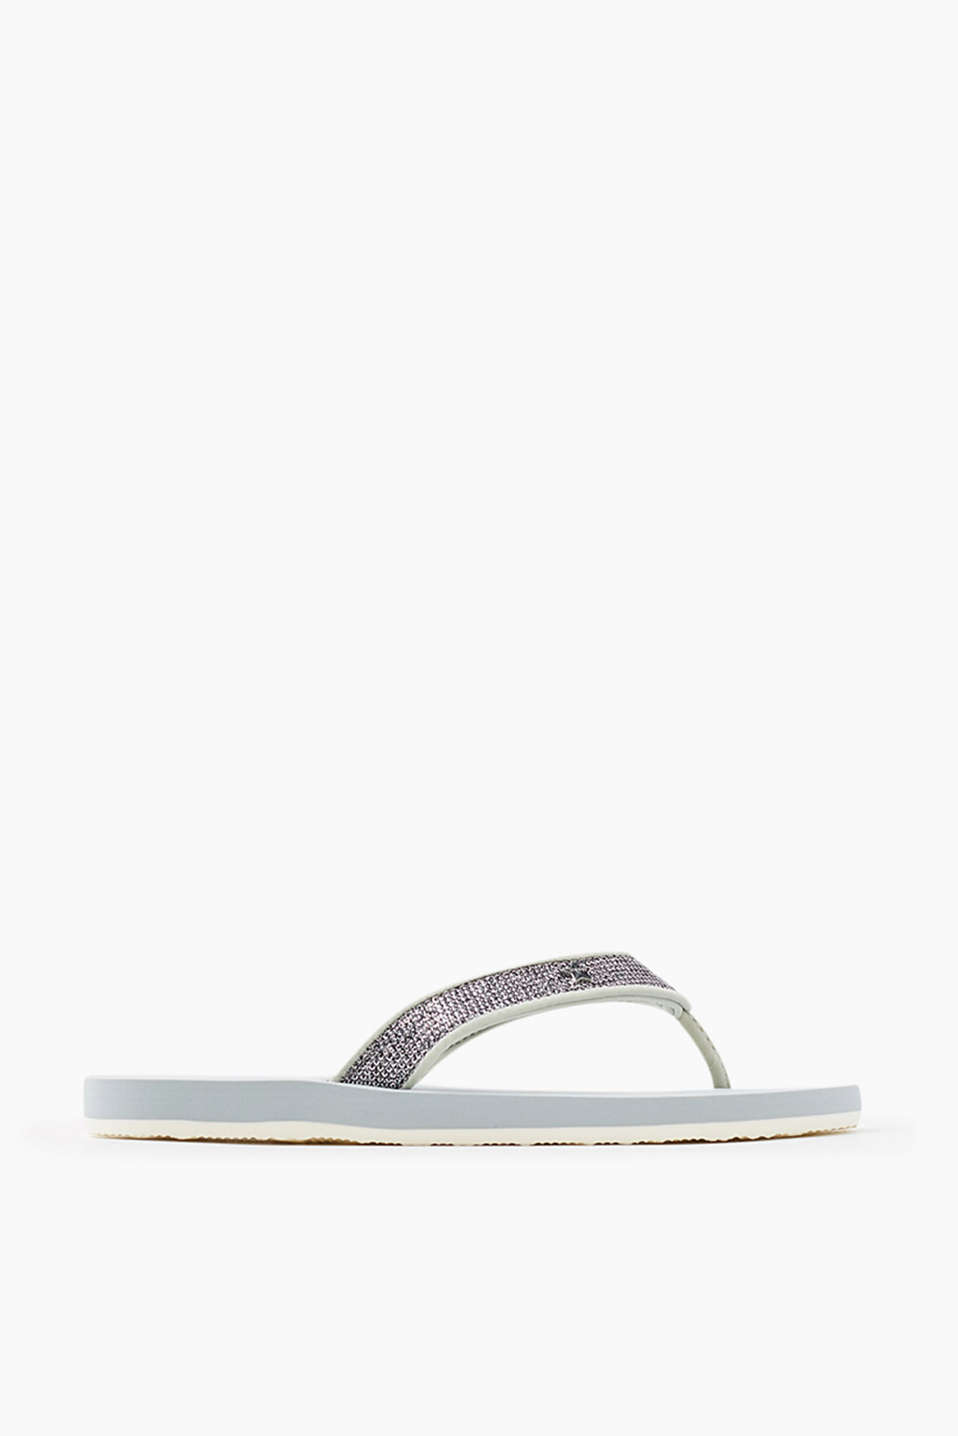 City slip slops with textured glittery straps